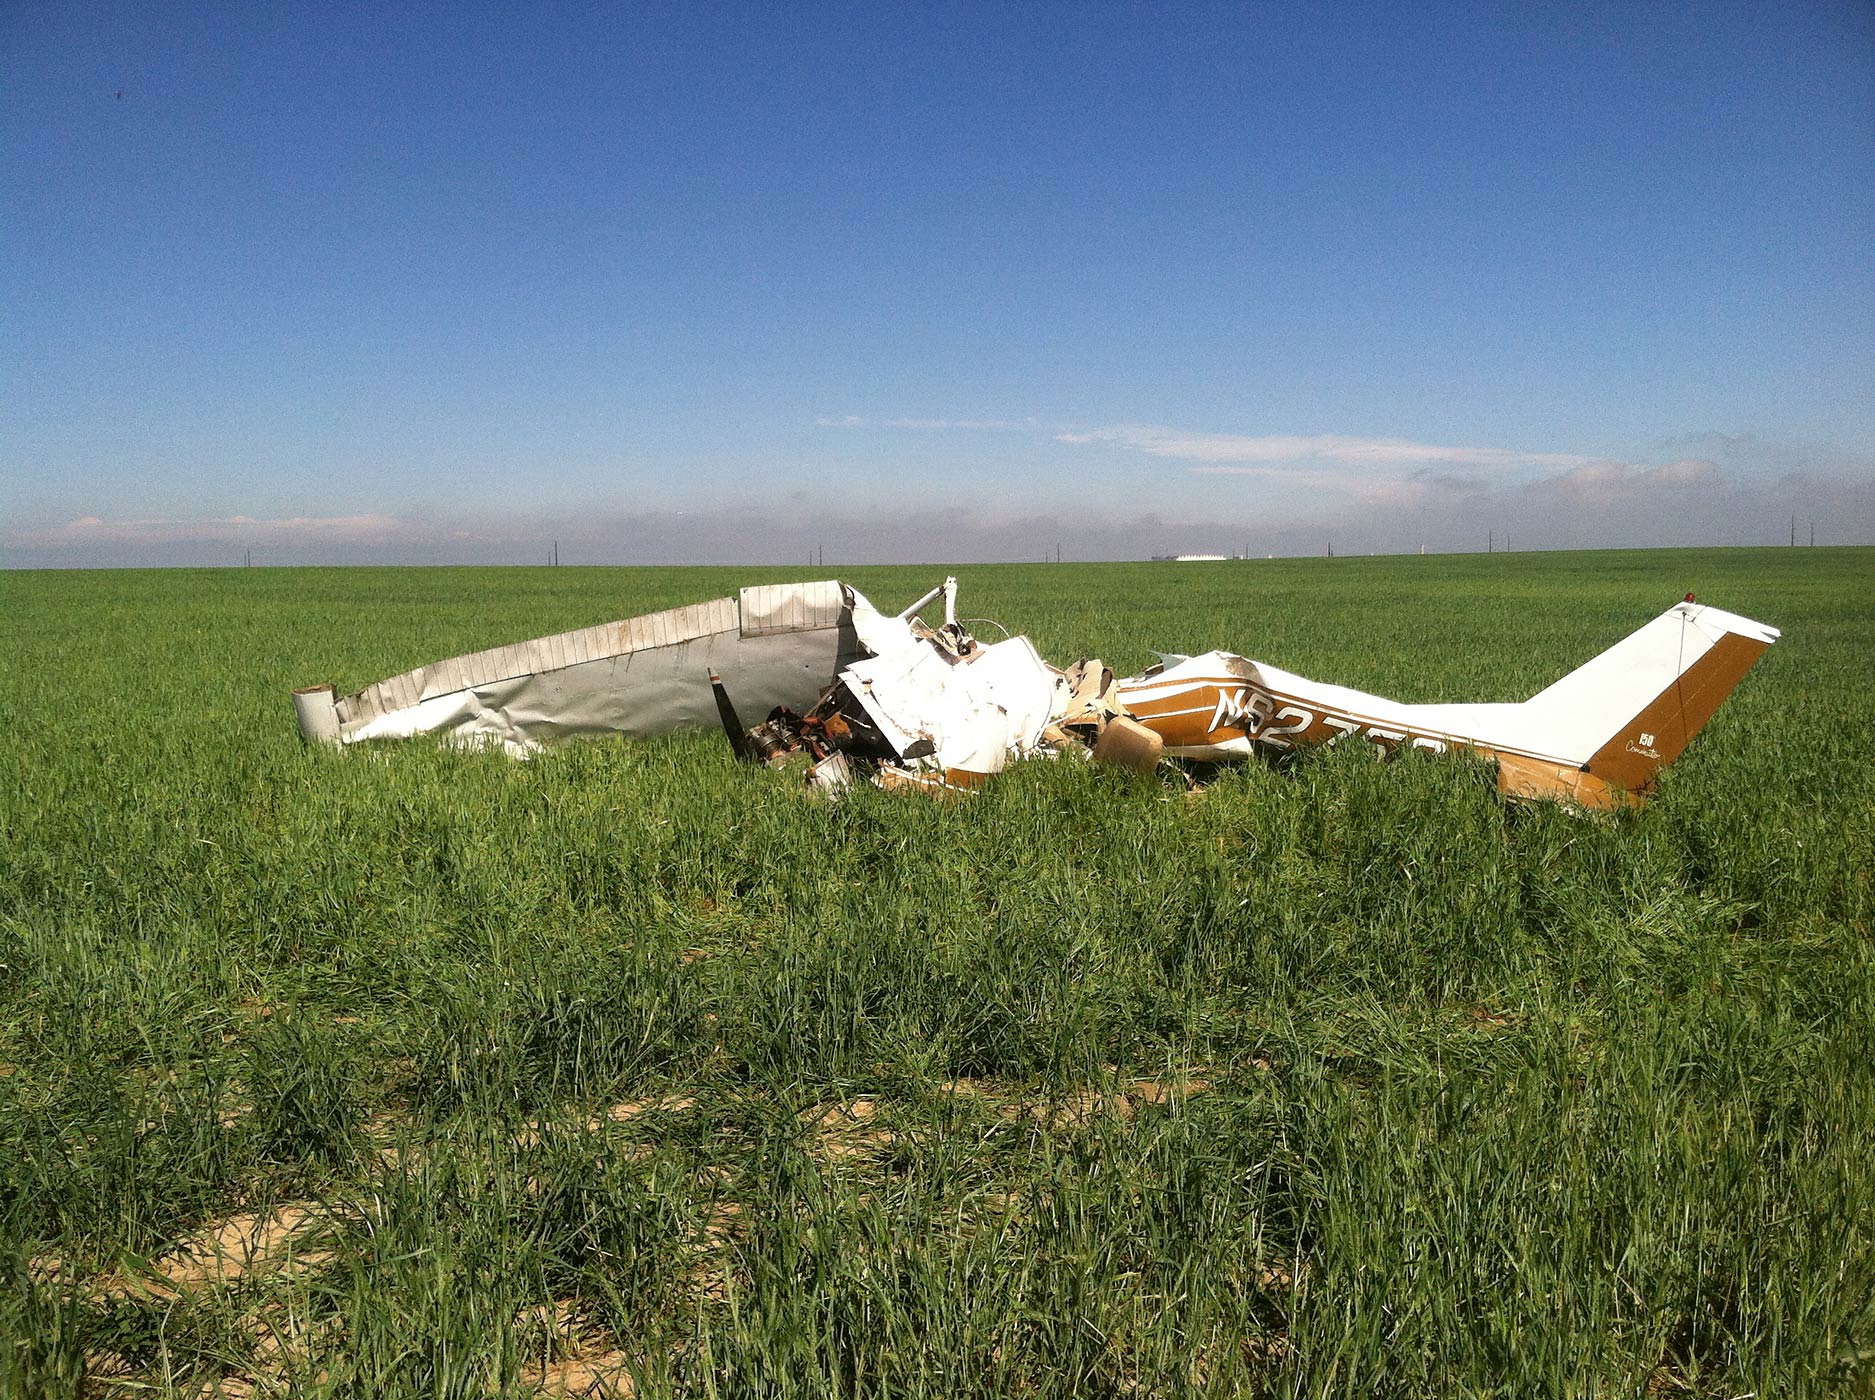 The wreckage of a crashed Cessna 150 airplane lies in a field near Watkins, Co. on May 31, 2014.